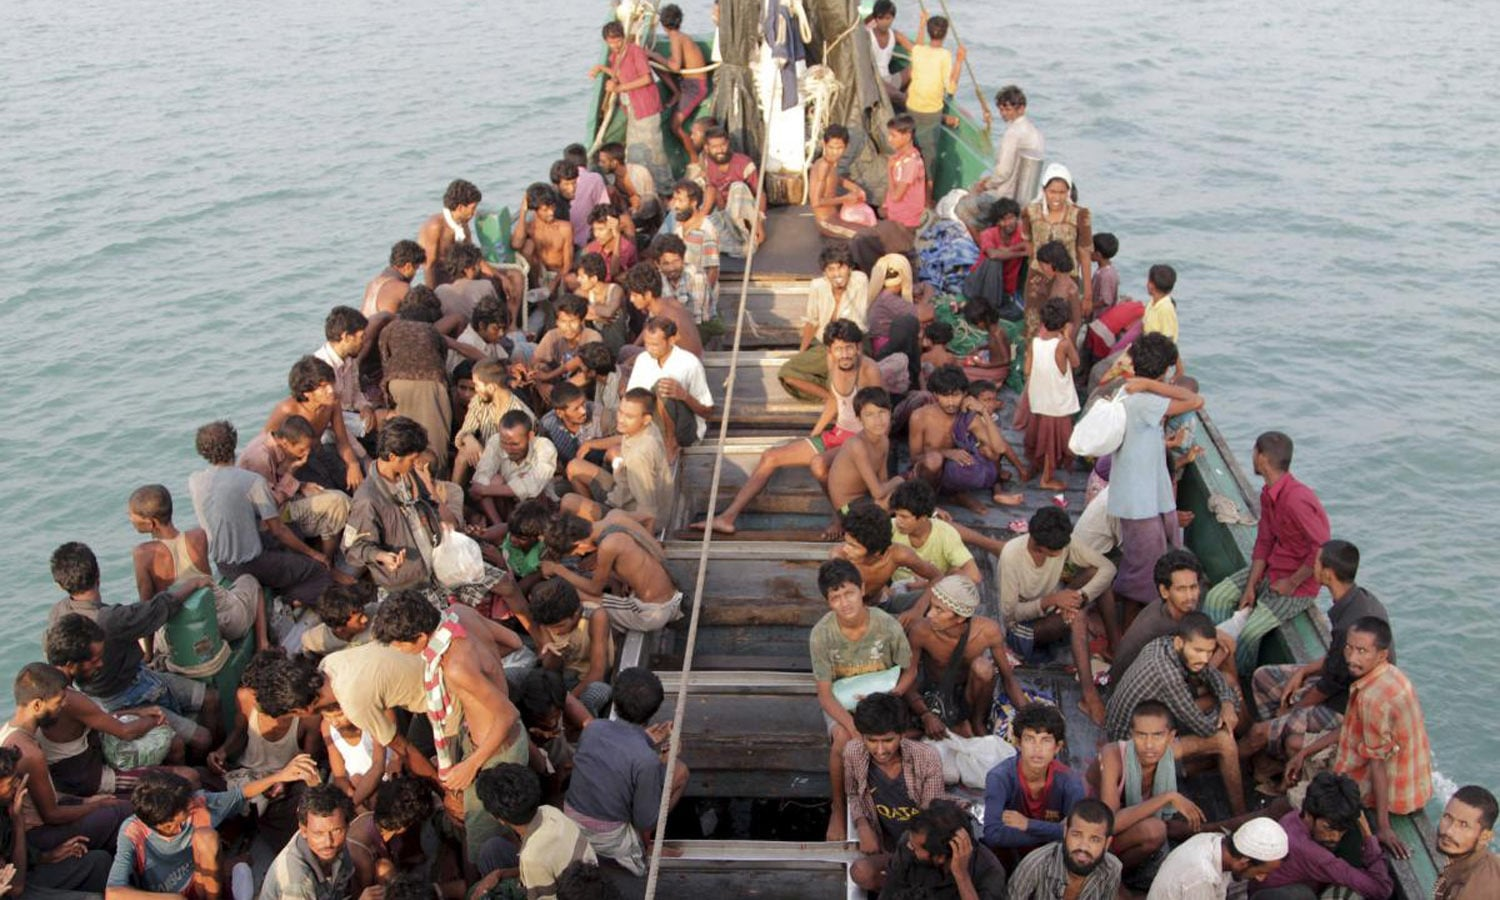 The Rohingyas are often called boat people for the perilous voyages they make to escape their homeland. (Credit: Reuters)